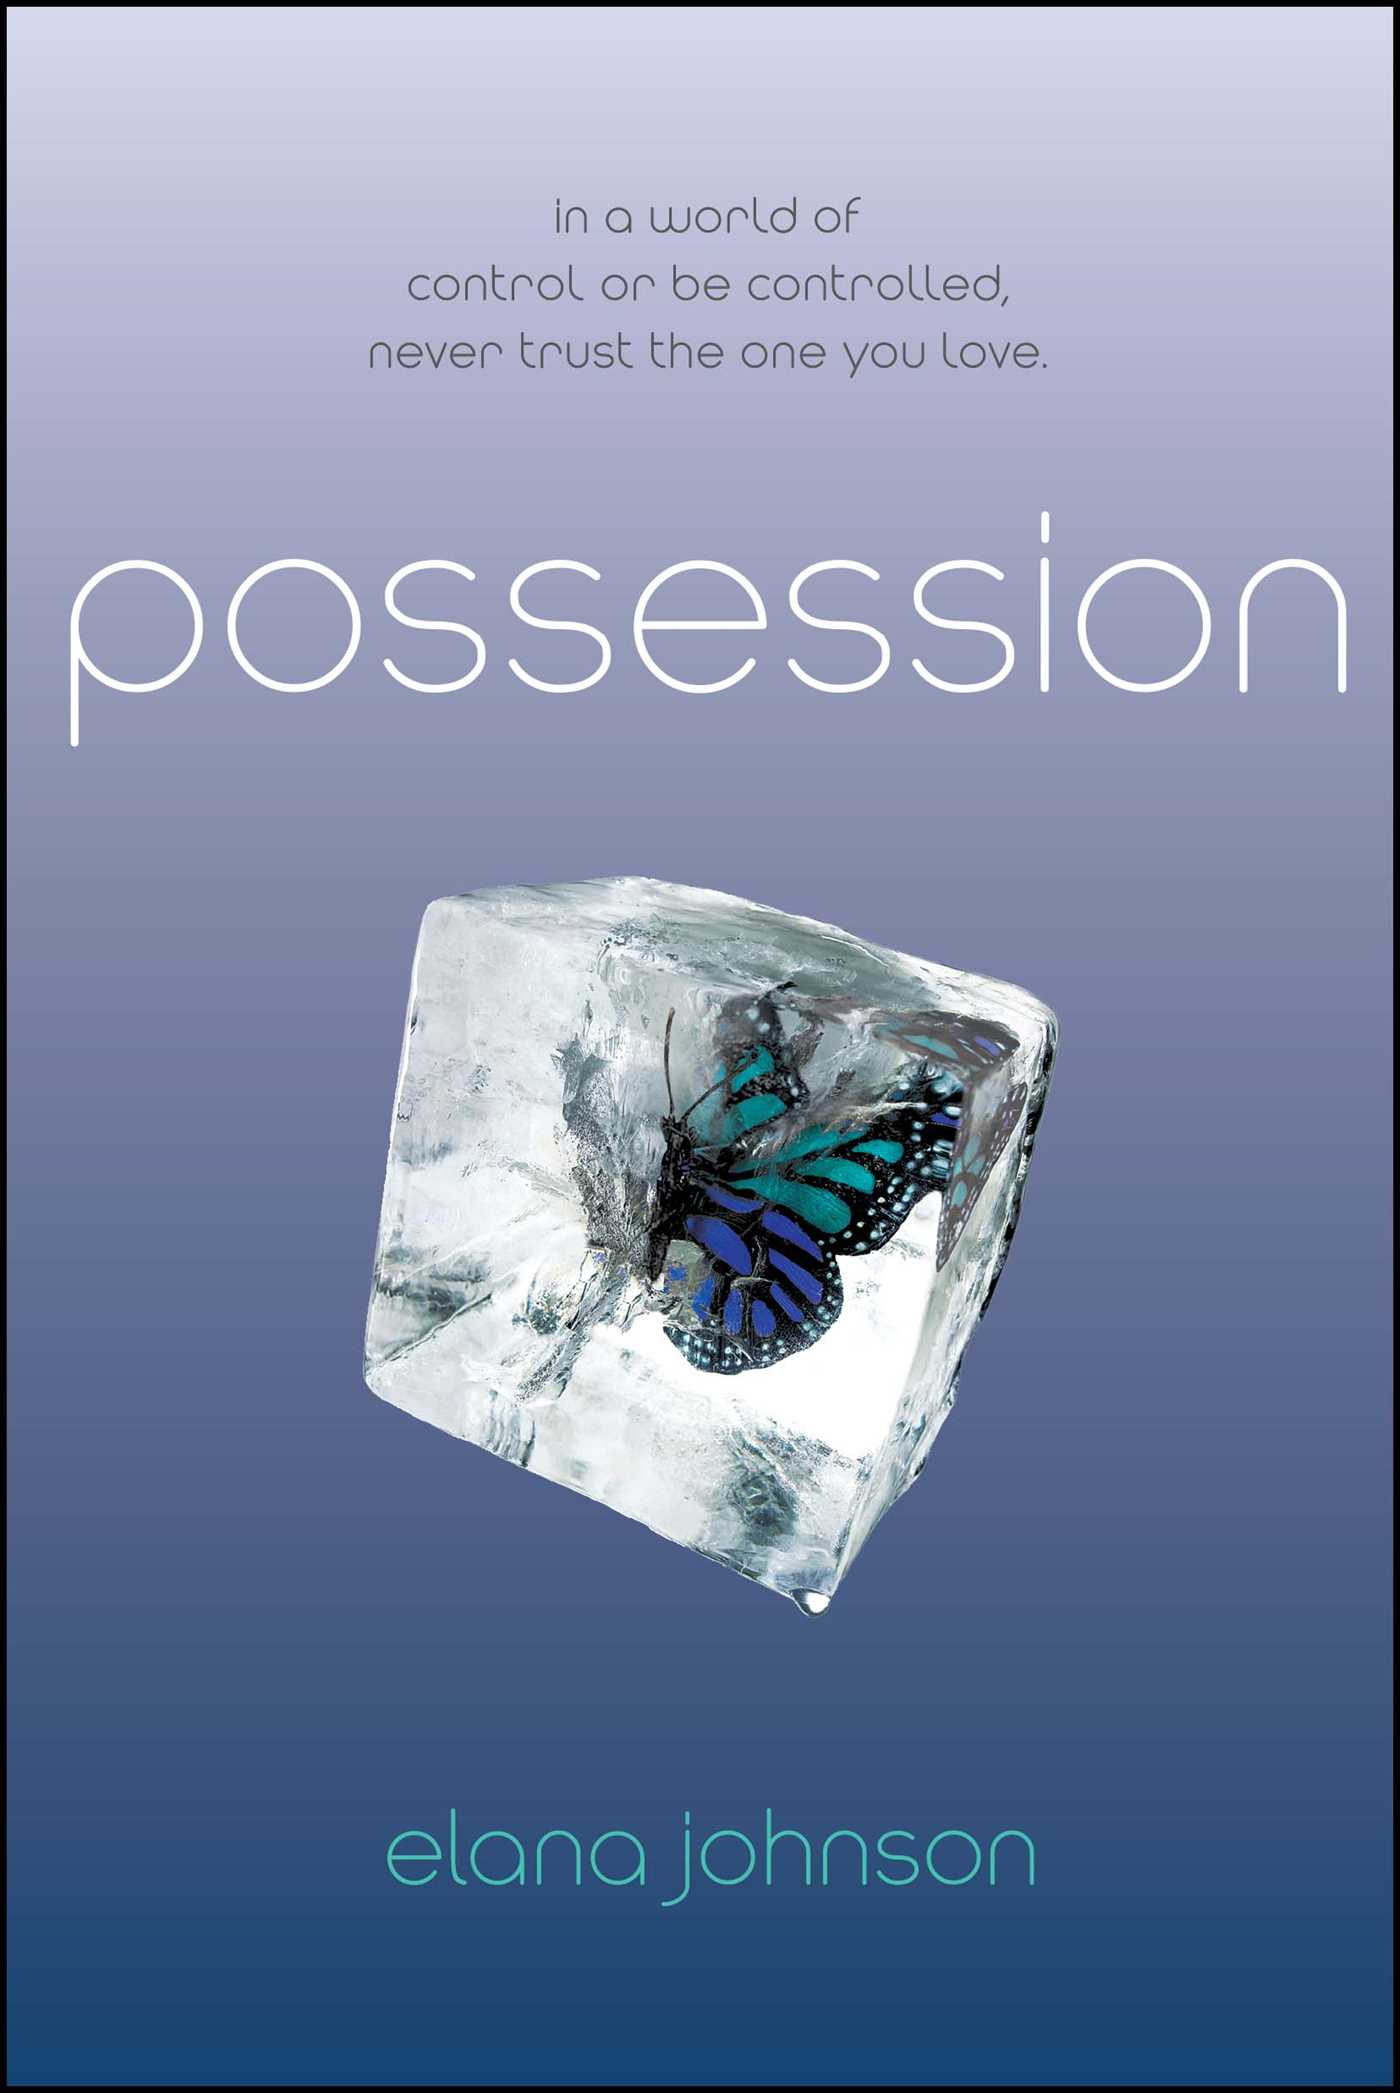 Possession 9781442421264 hr